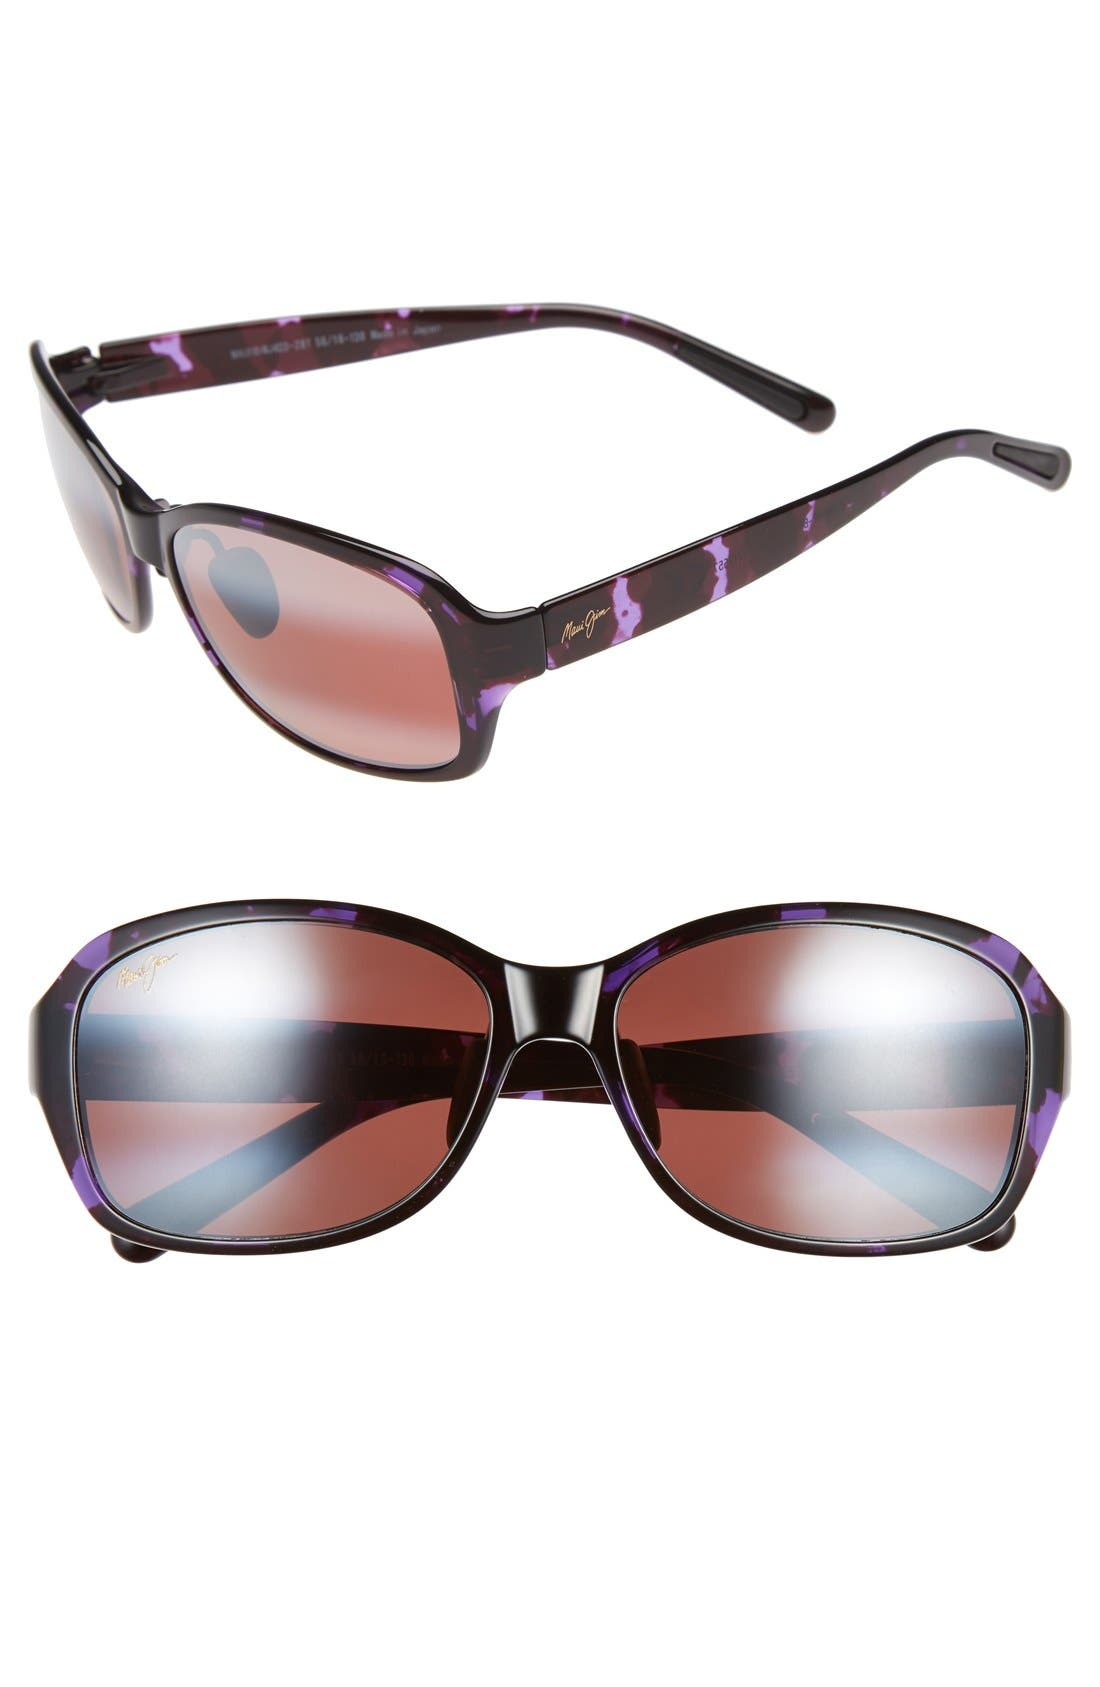 Koki Beach 56mm PolarizedPlus2<sup>®</sup> Sunglasses,                         Main,                         color, Purple Tortoise/ Maui Rose